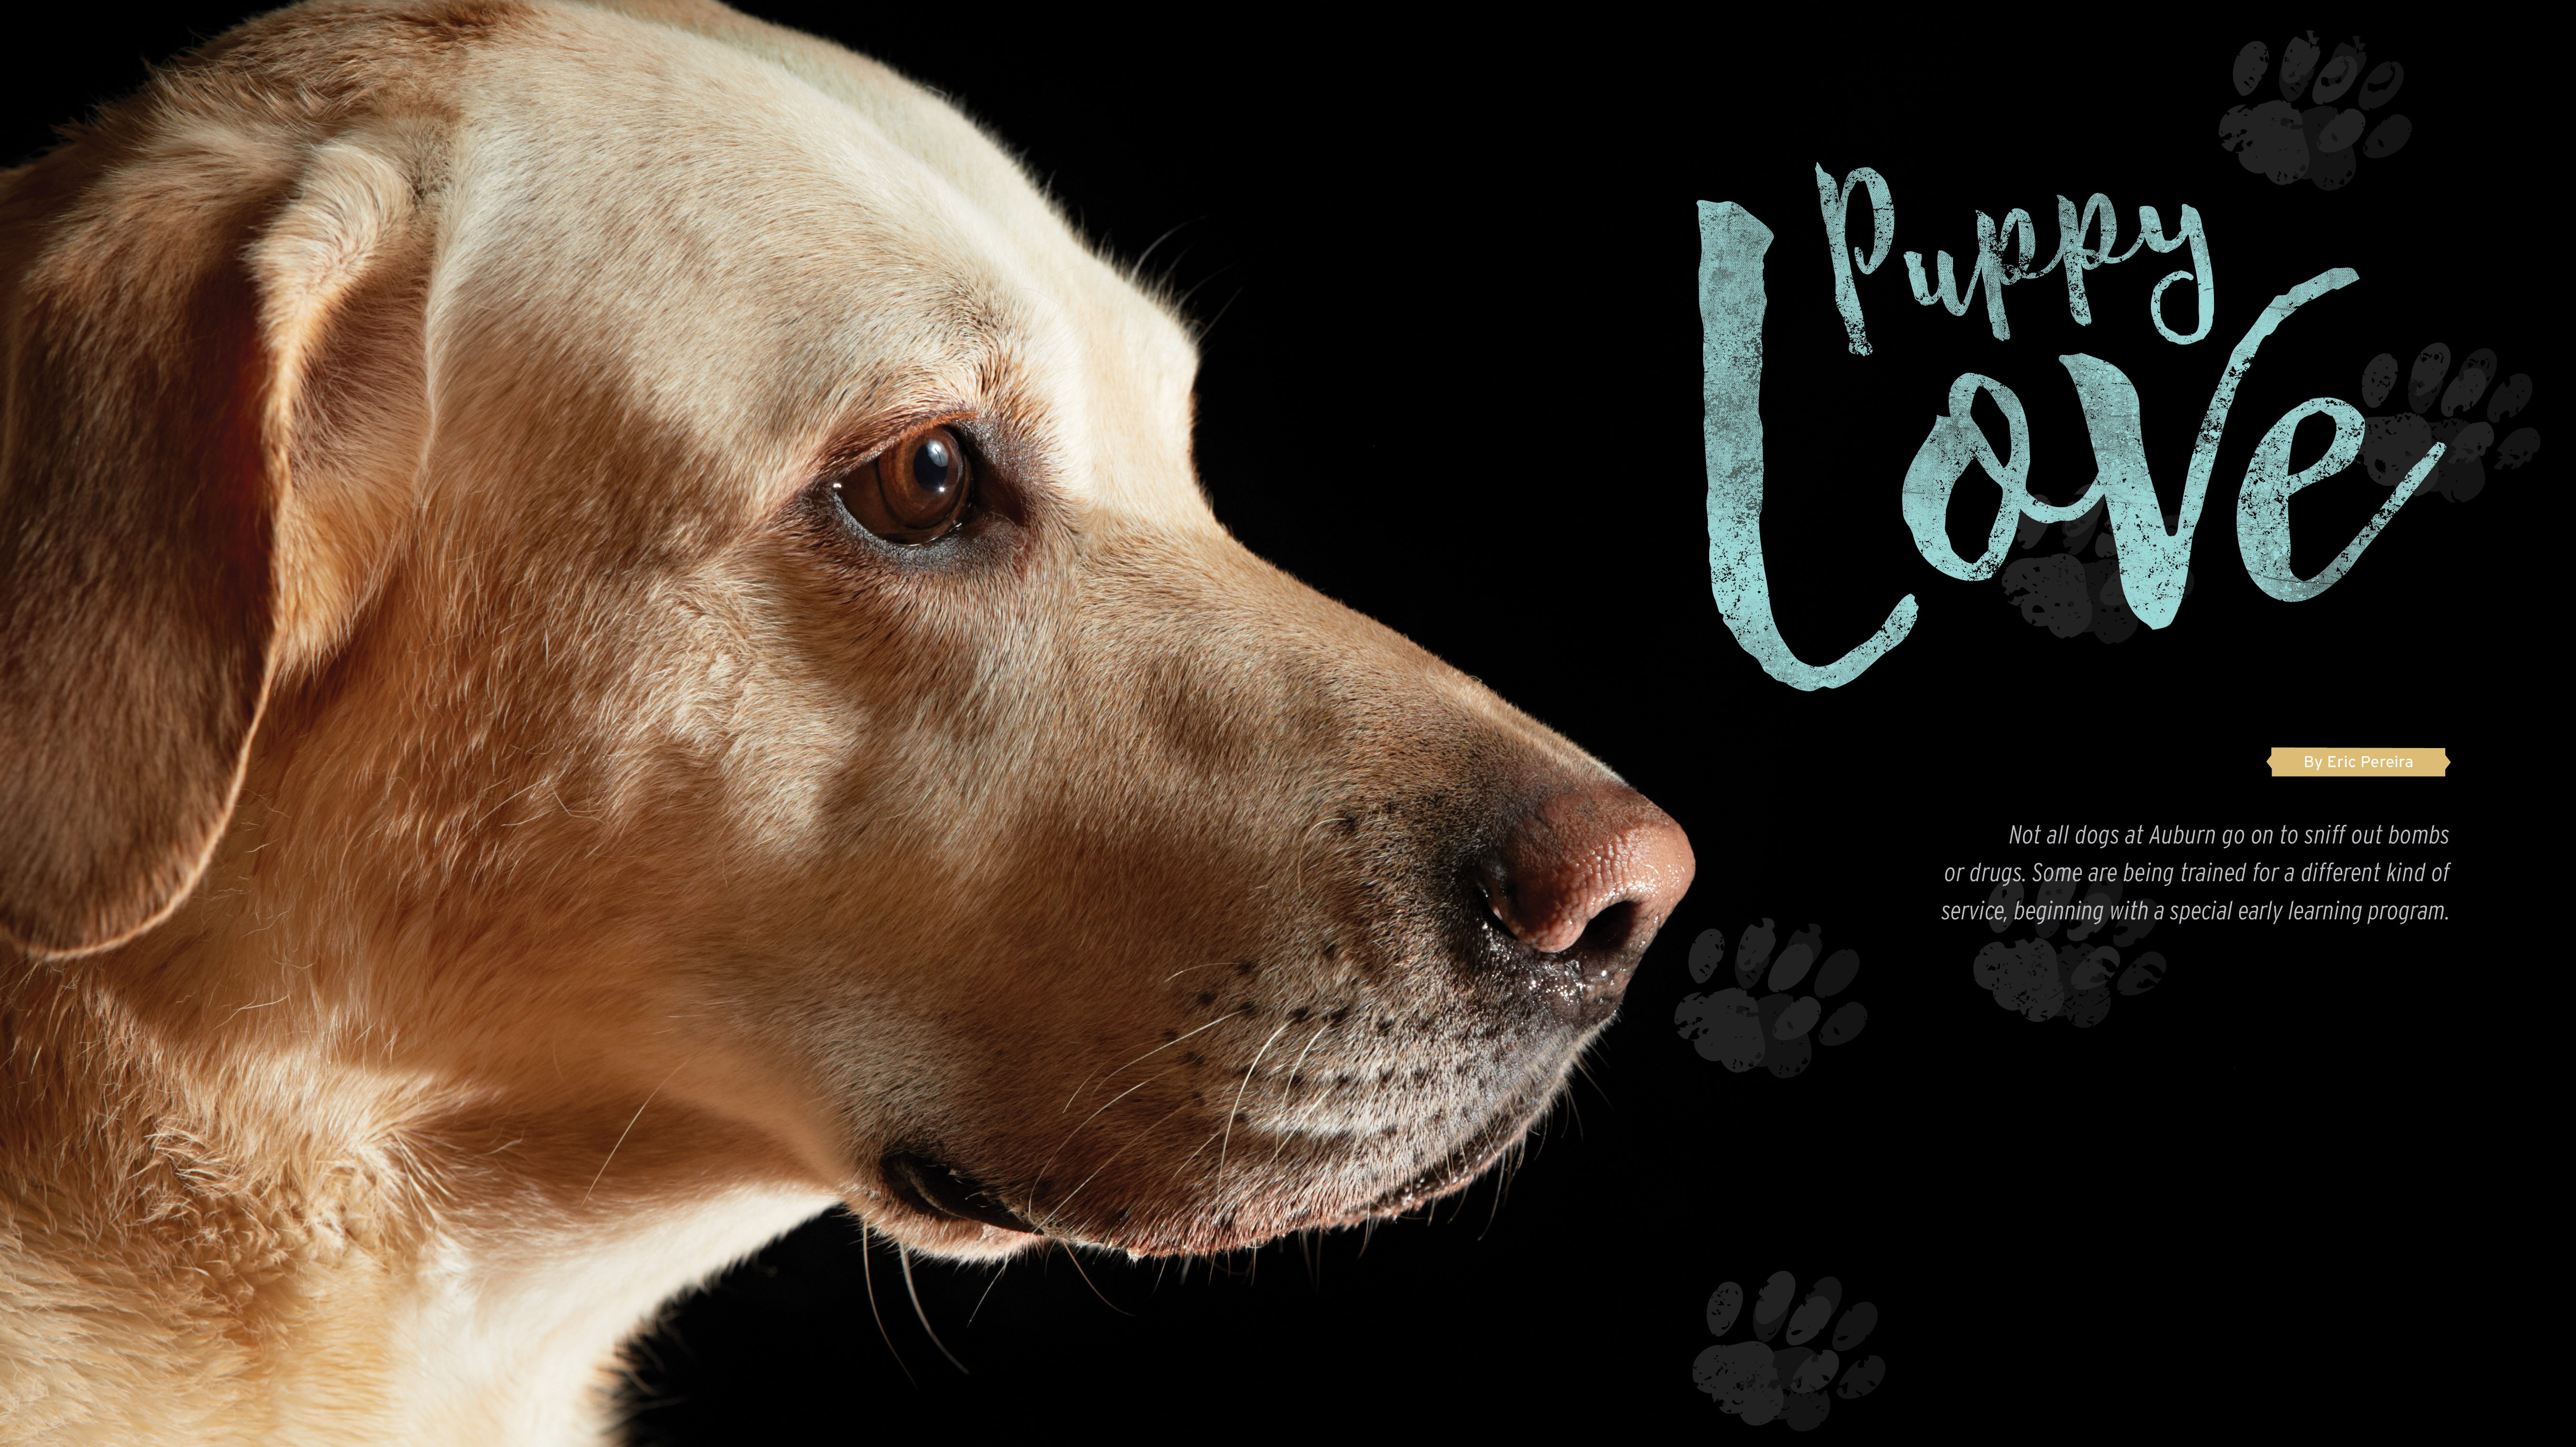 Puppy Love by Eric Pereira; Not all dogs at Auburn go on to sniff out bombs or drugs. Some are being trained for a different kind of service, beginning with a special early learning program.